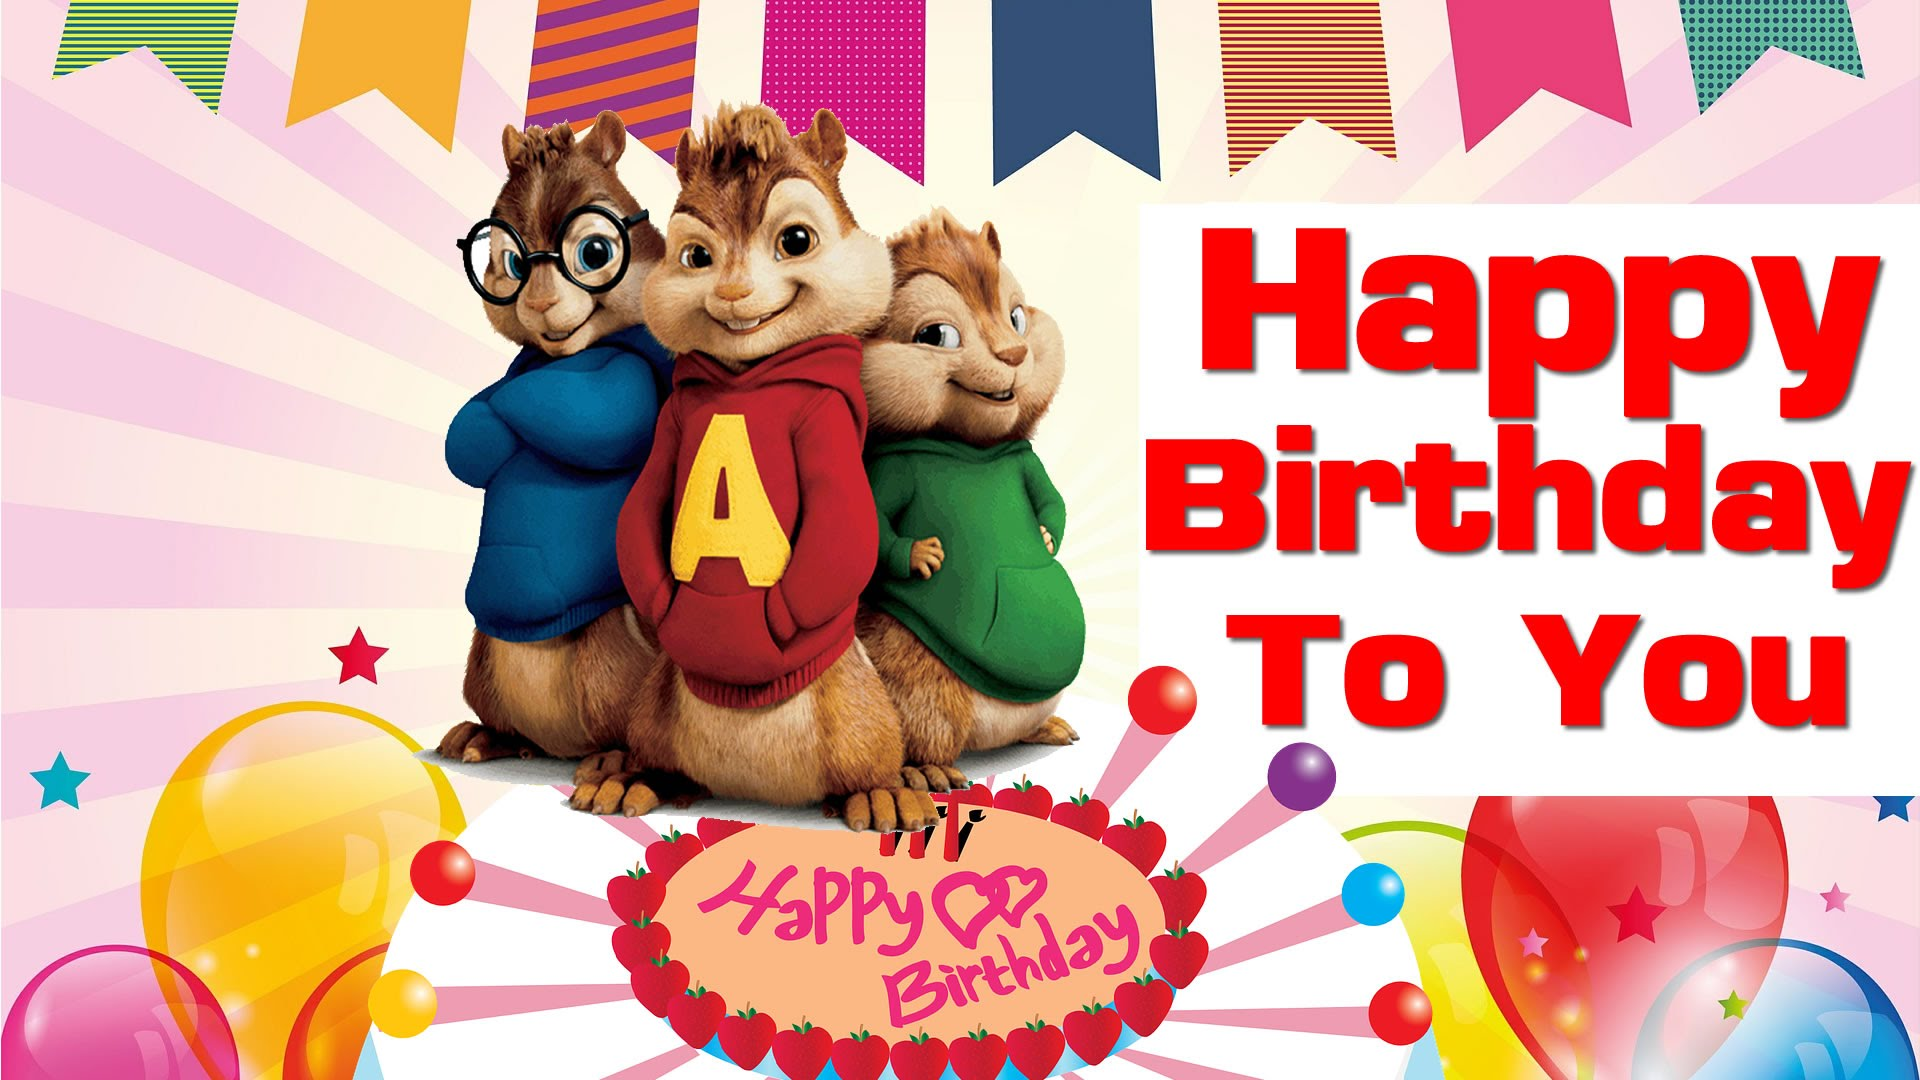 alvin-and-the-chipmunks birthday cards